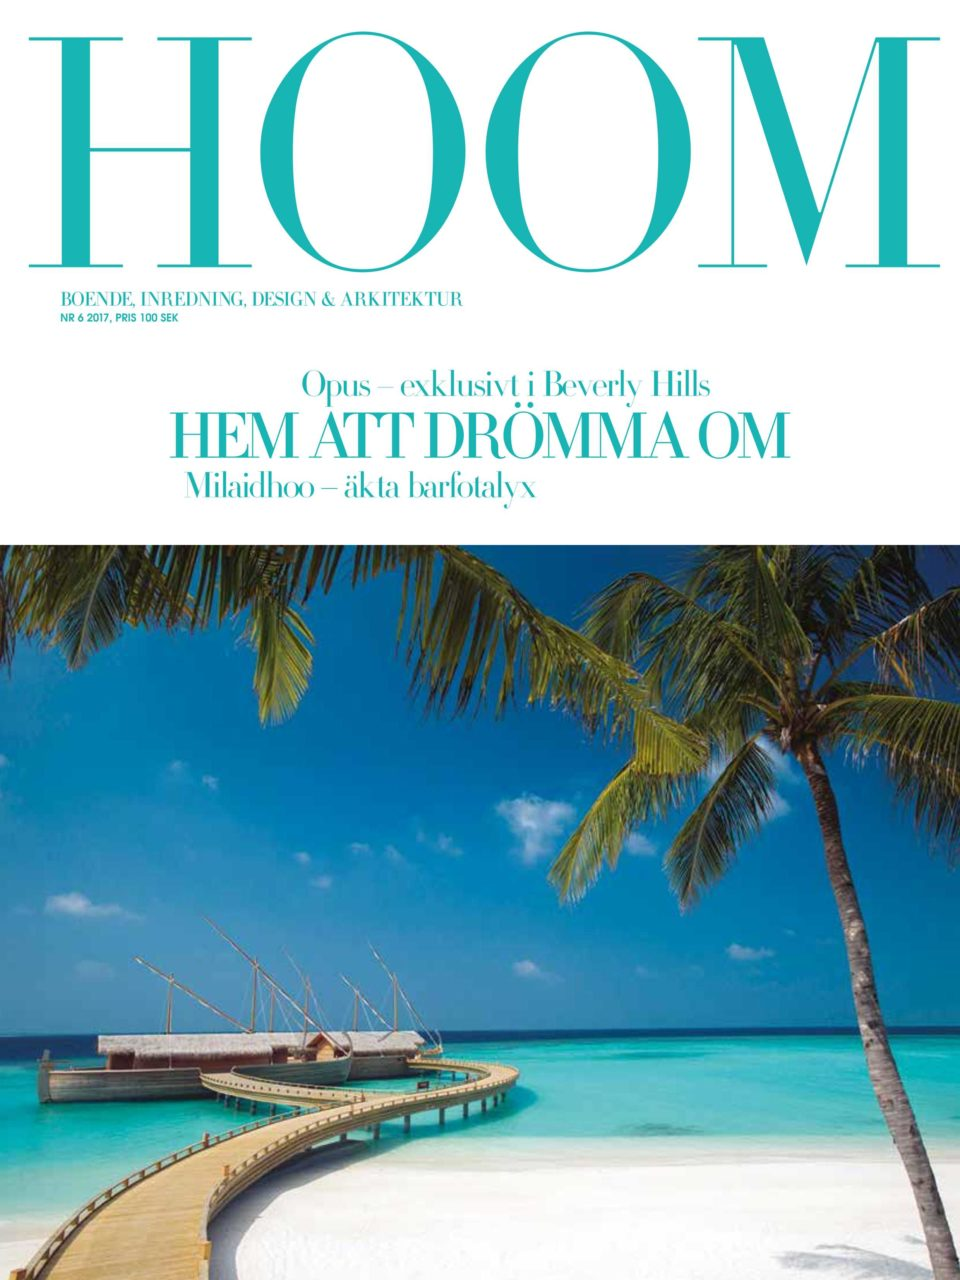 https://www.saota.com/wp-content/uploads/2019/04/2017_12_01_SE_Hoom_StTropez_Dec2017_Cover.jpg